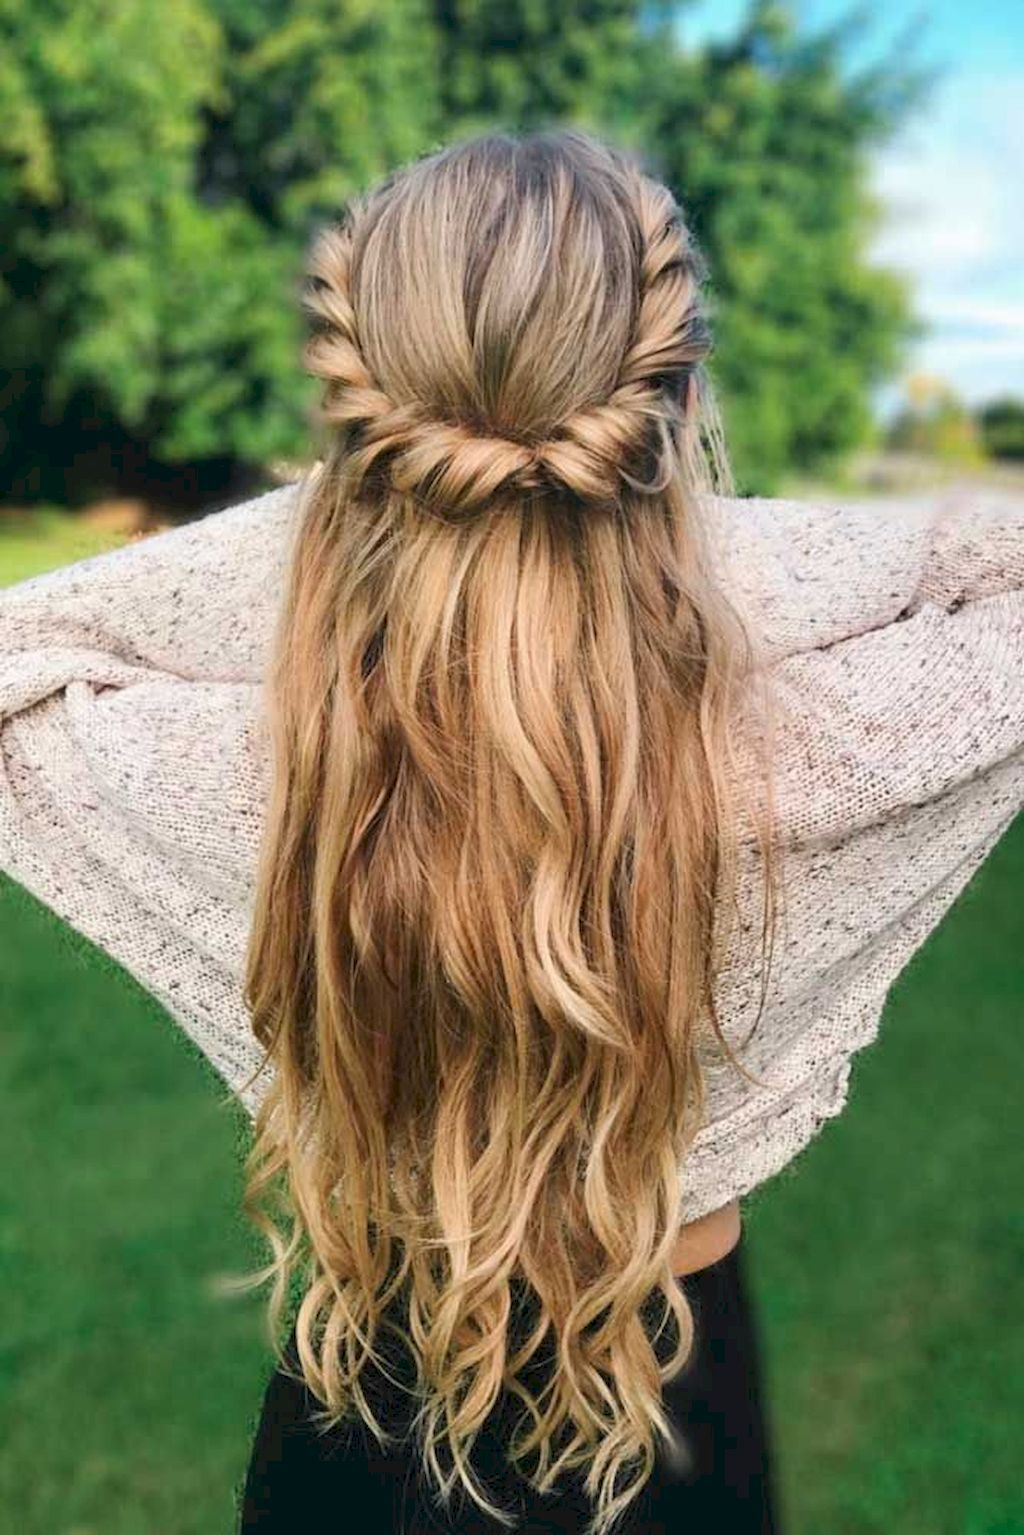 40 easy summer hairstyle ideas to do yourself | hairstyles